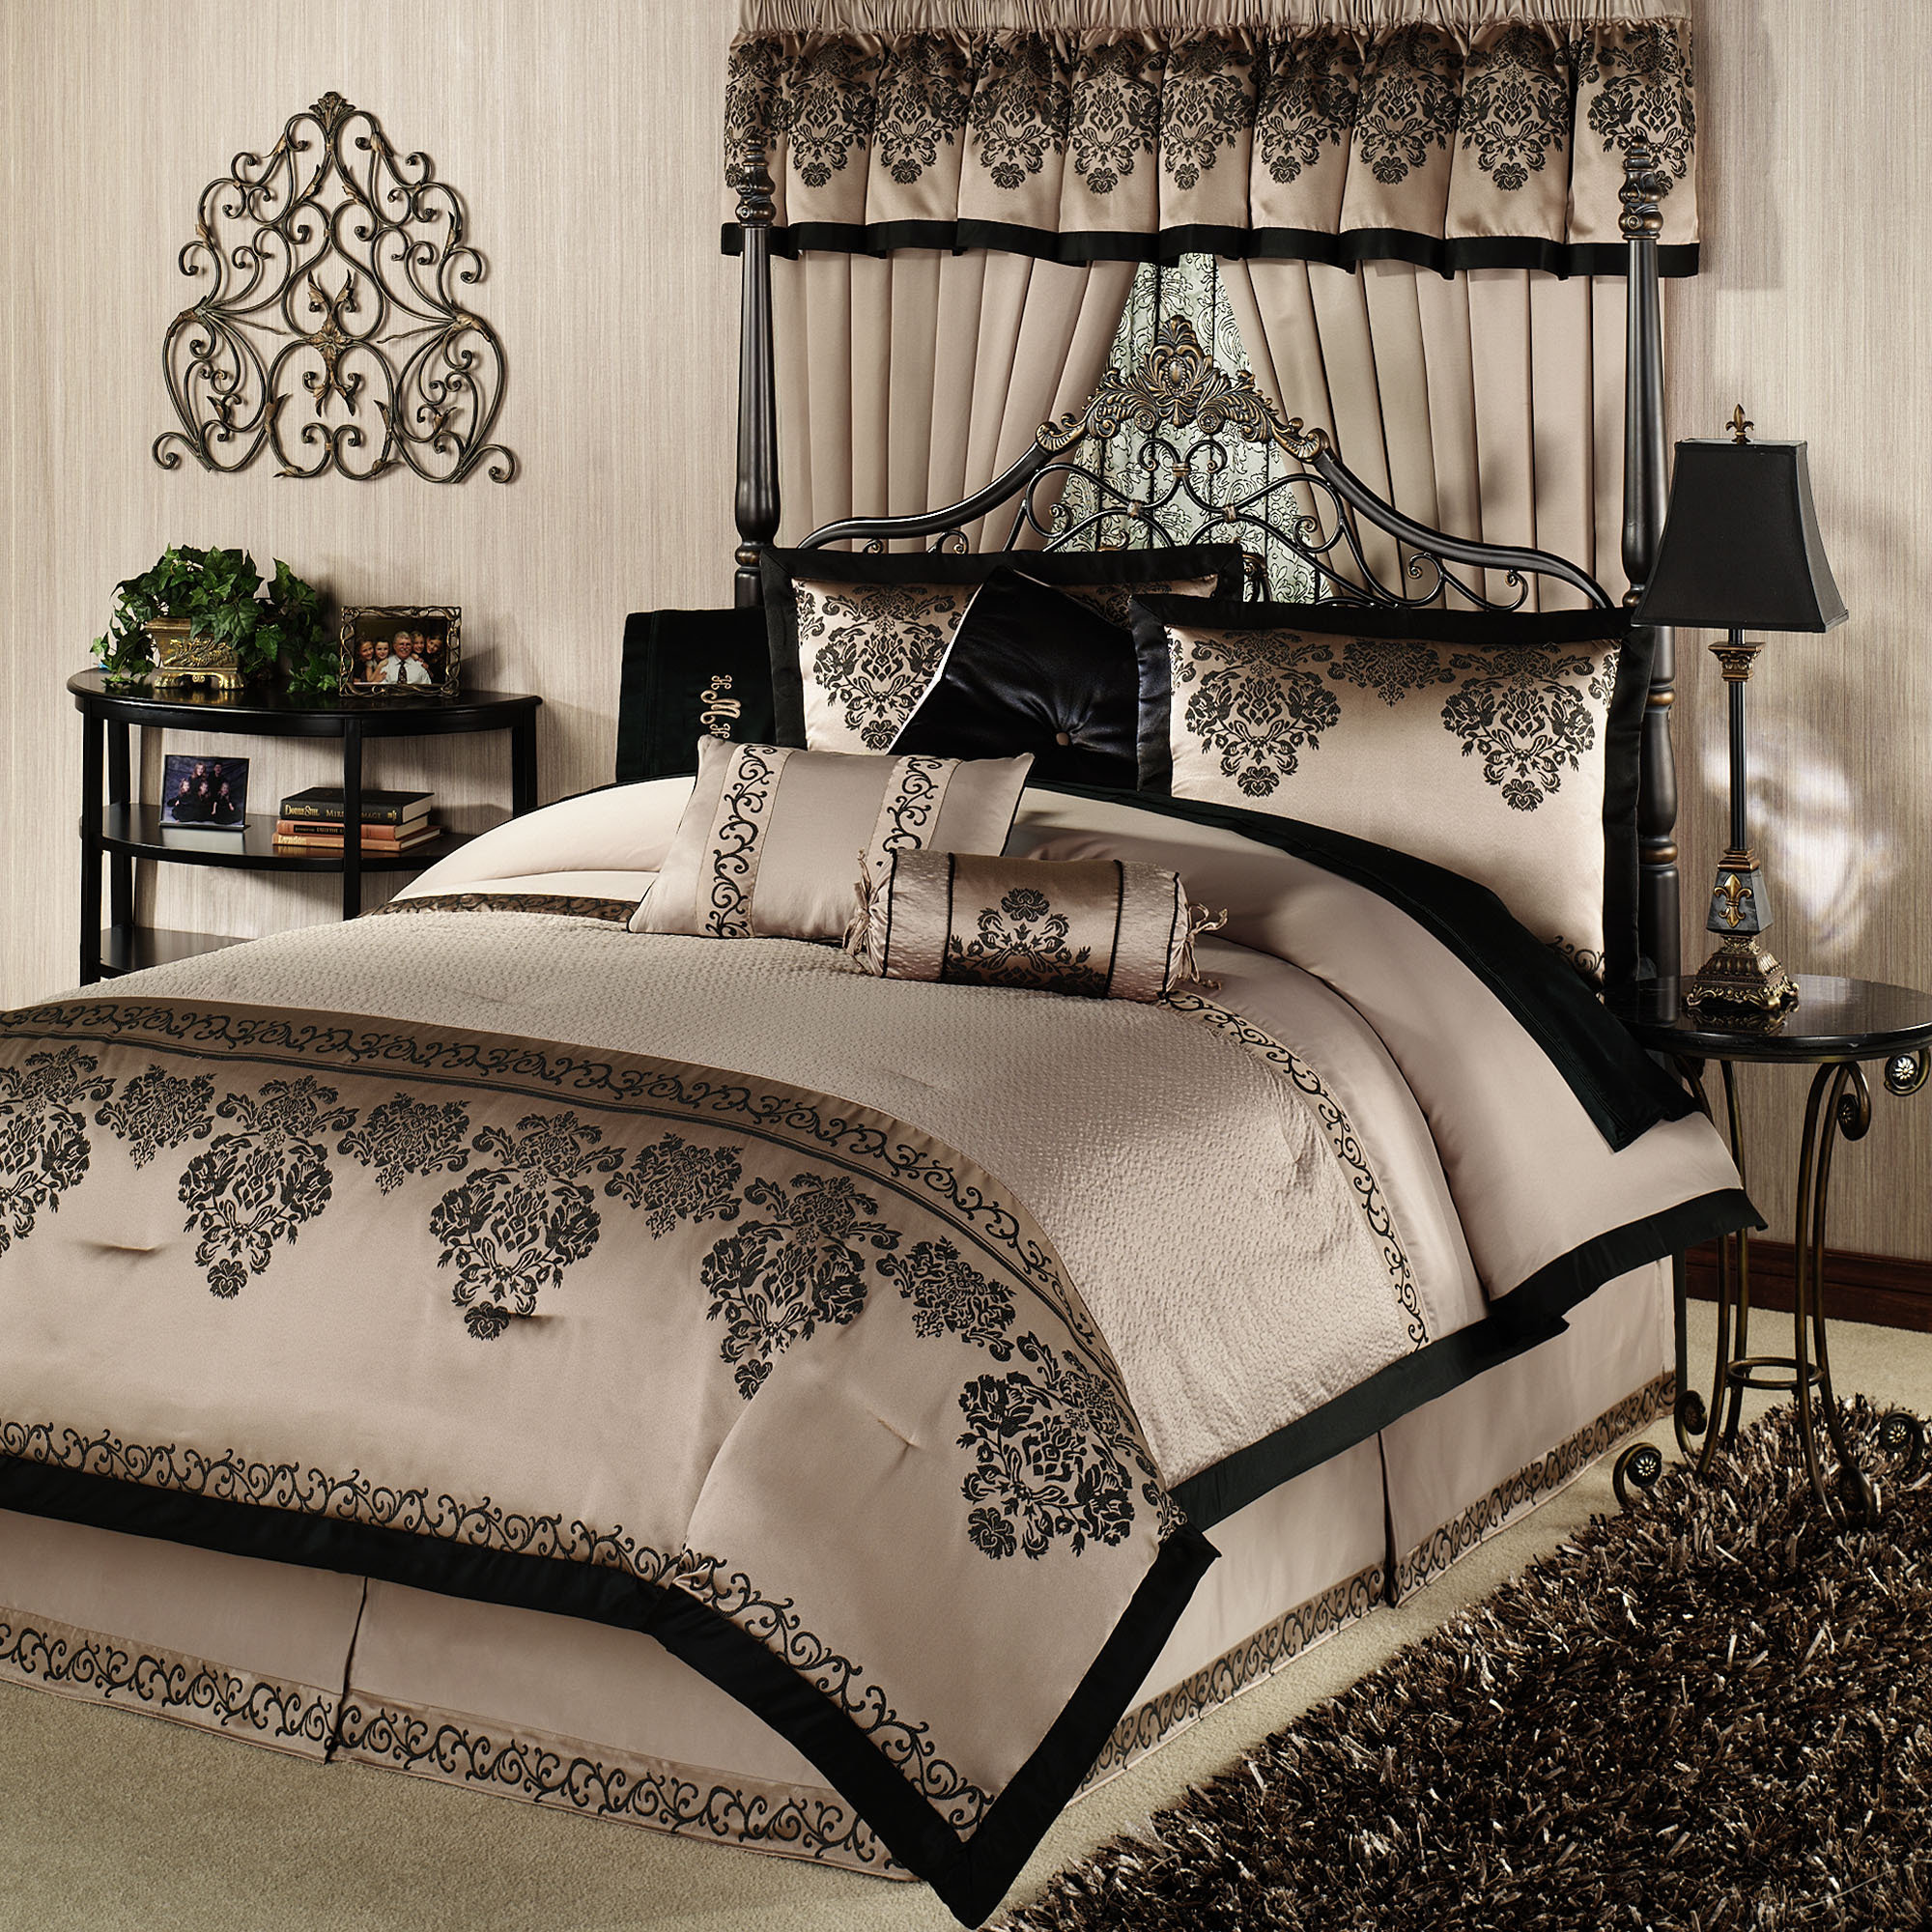 comforters king comforter blanket best beyond sets components bed set from queen bedroom bath of several